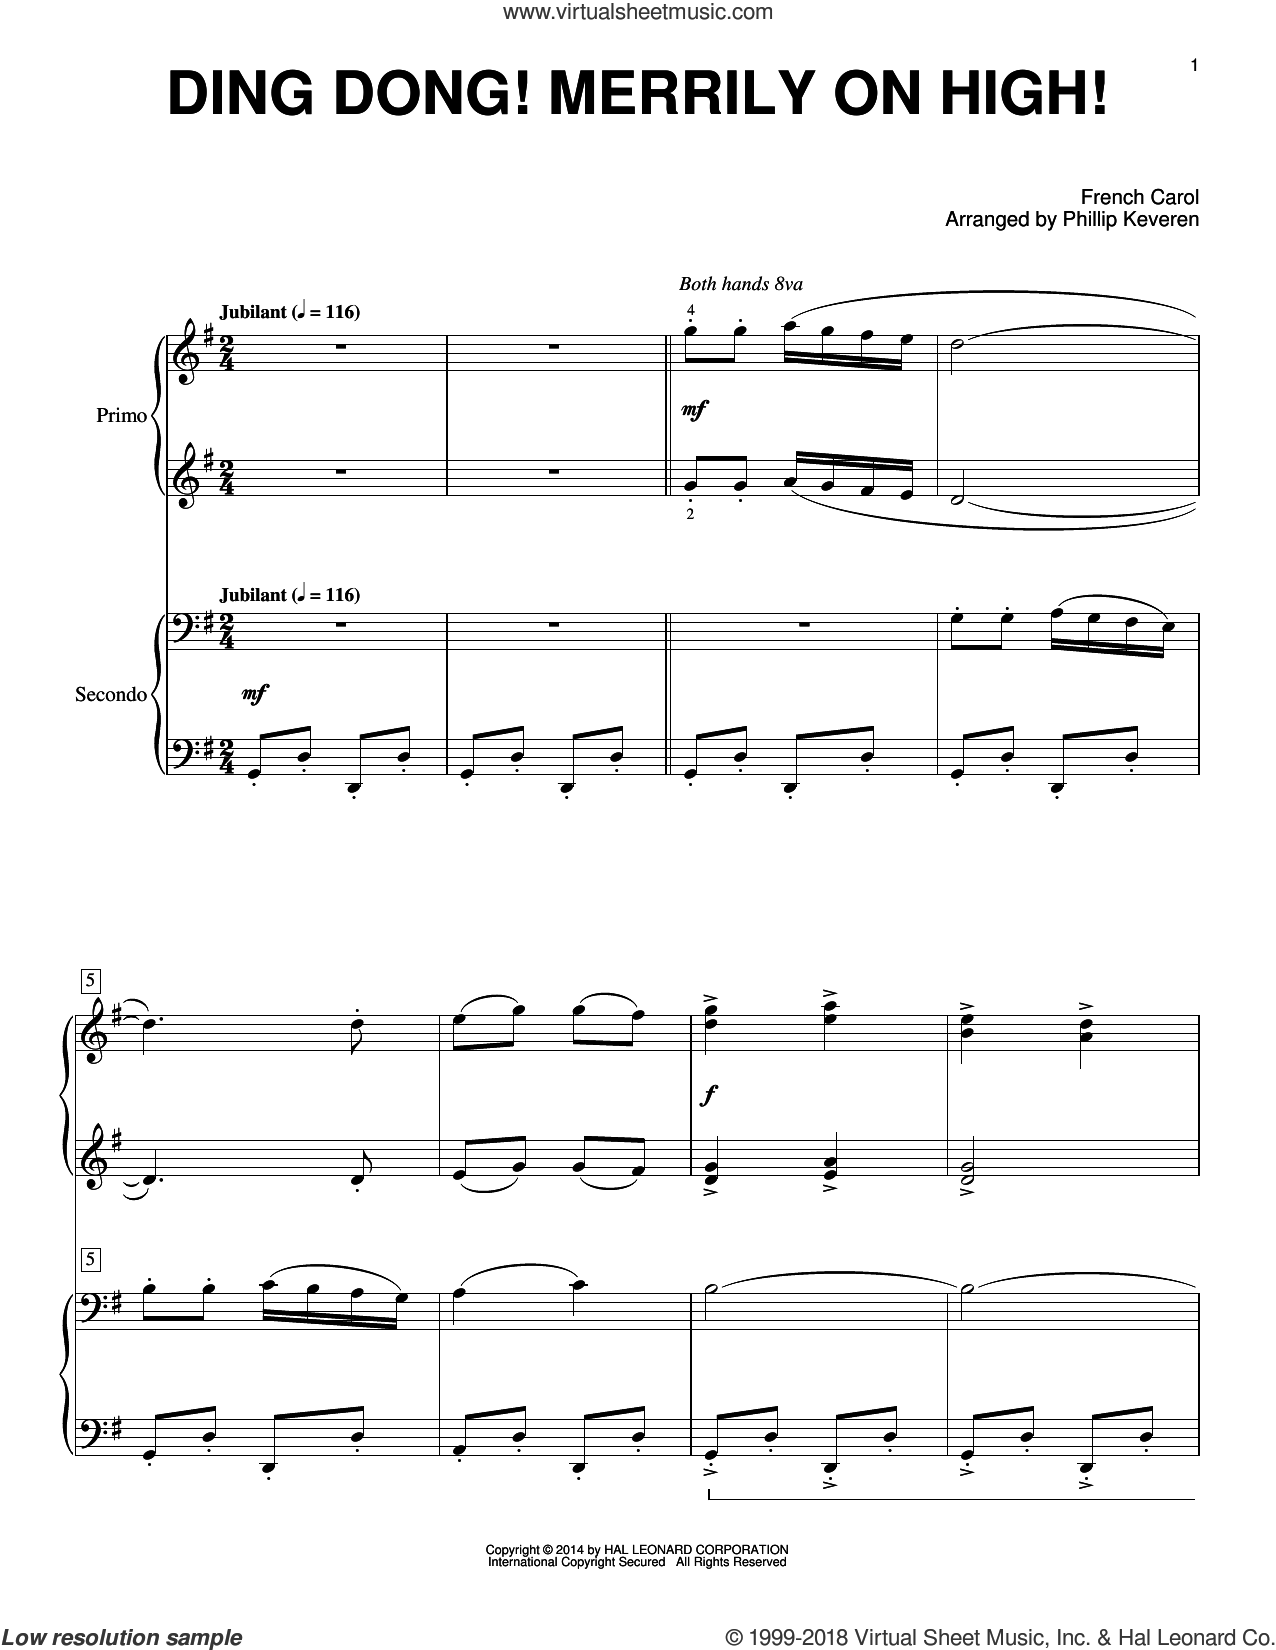 Ding Dong! Merrily On High! sheet music for piano four hands by Phillip Keveren, intermediate skill level